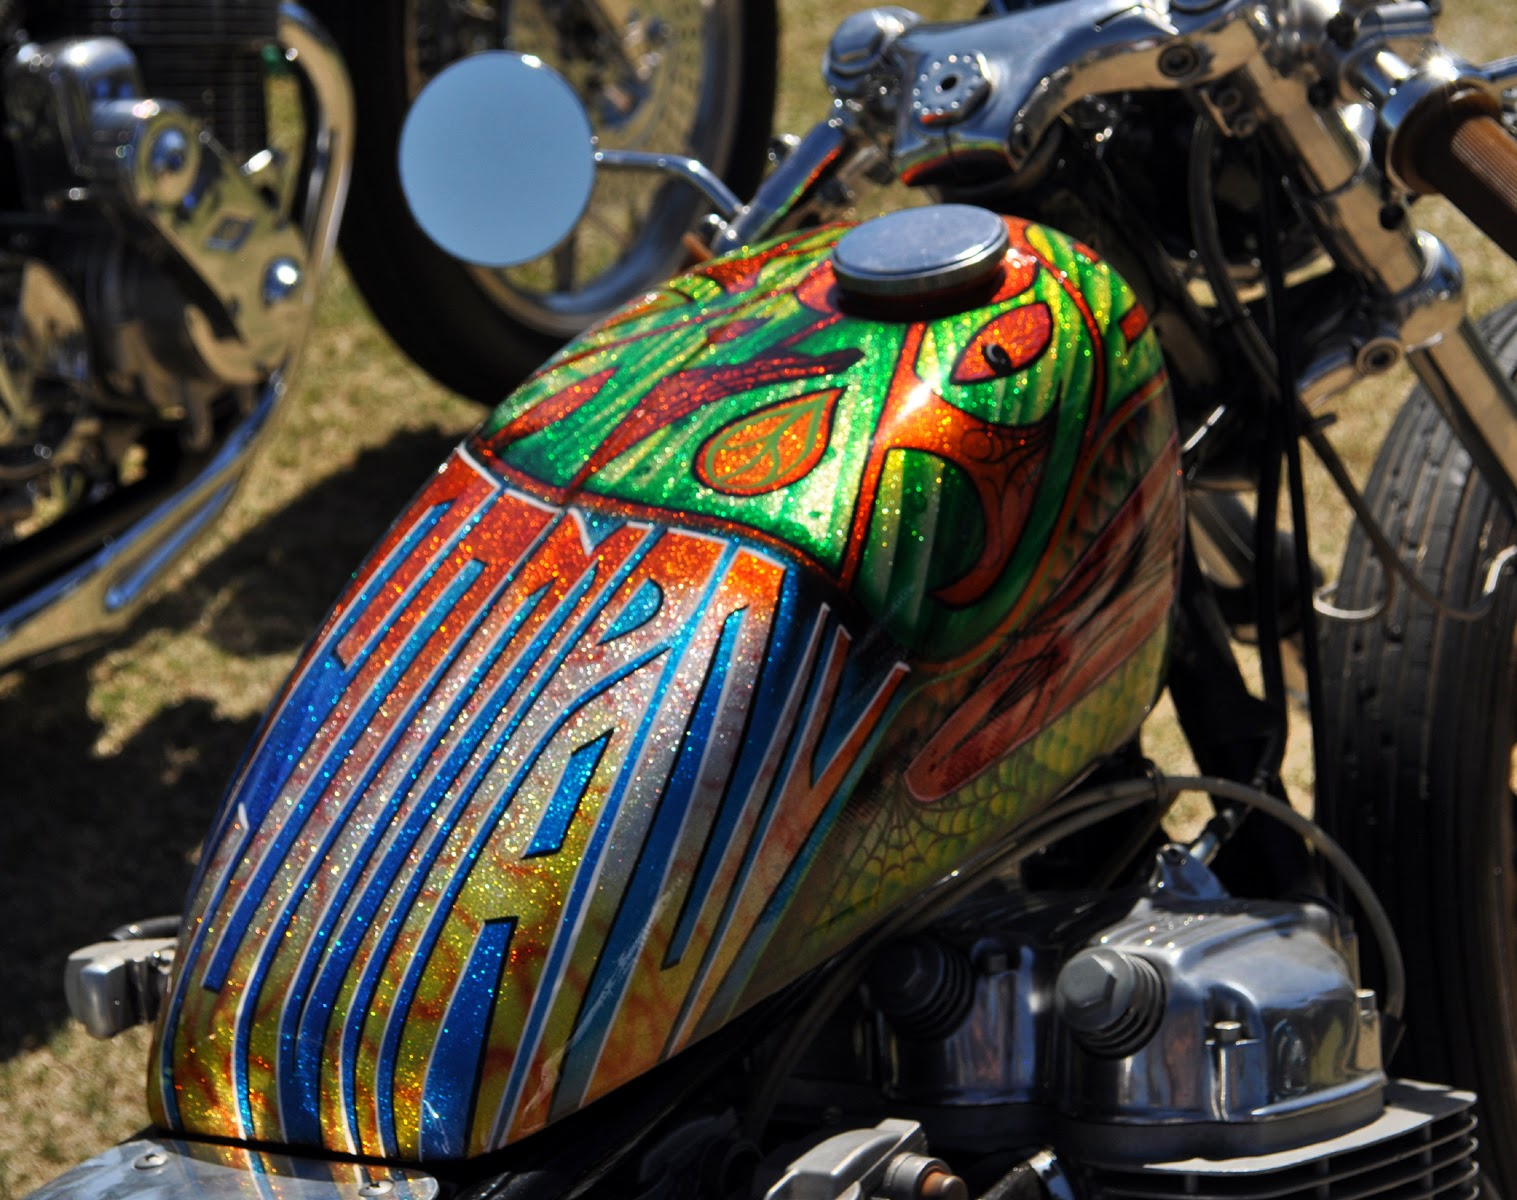 motorcycle paint jobs great gas tank paint job cool motorcycle paint. Black Bedroom Furniture Sets. Home Design Ideas